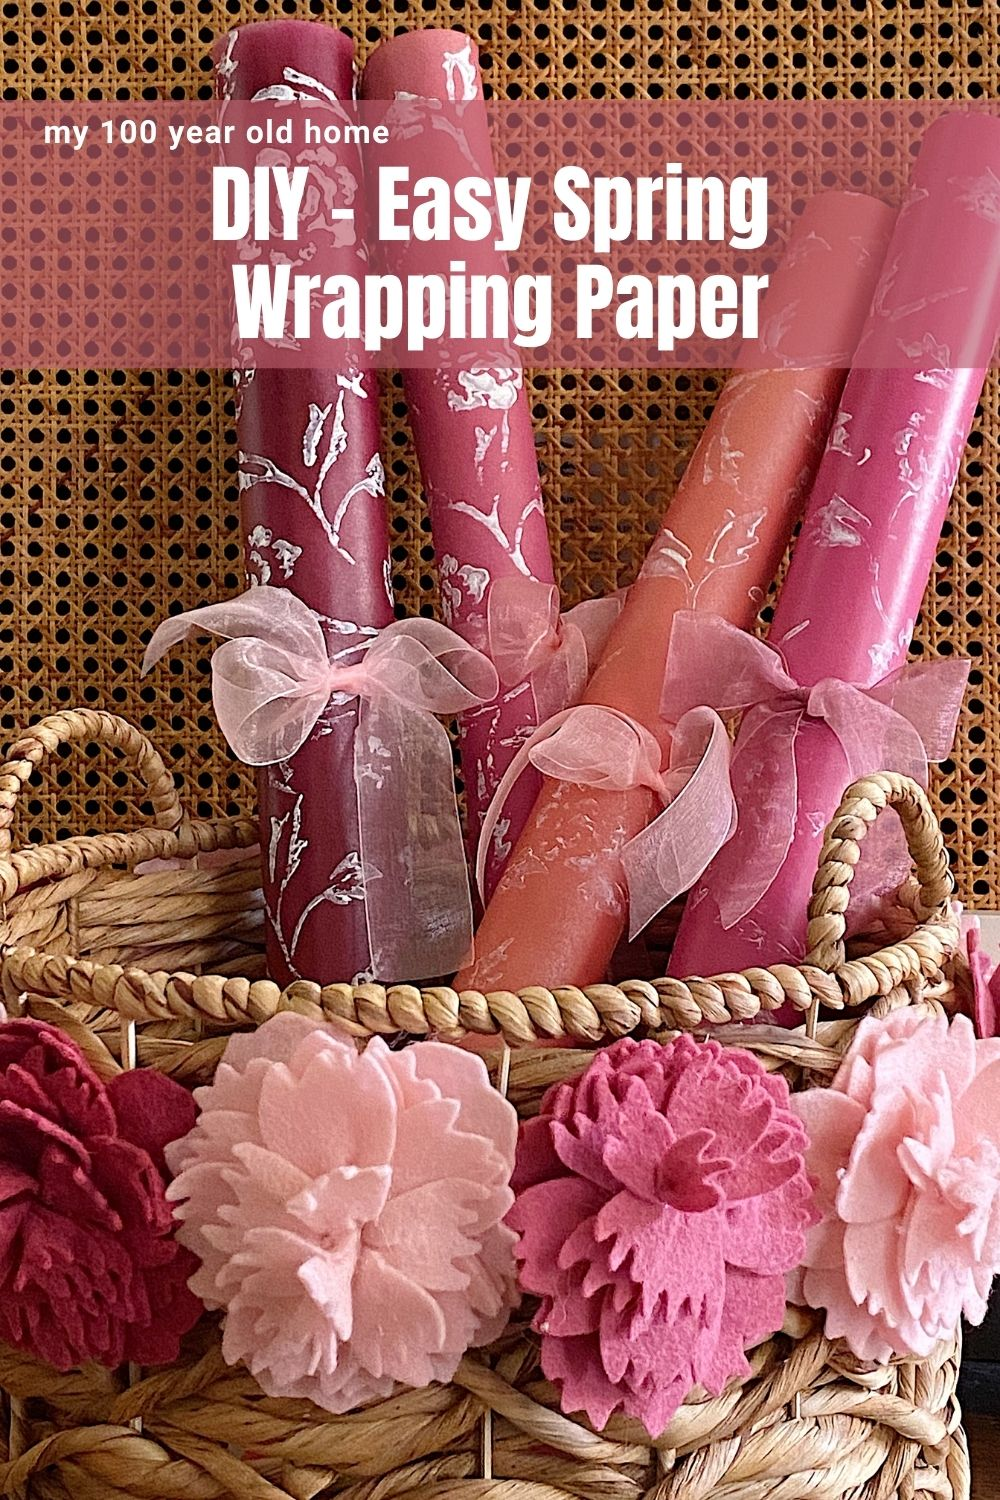 I decided to come up with a craft idea only using things I already own. This homemade spring wrapping paper is one of my new favorite easy paper crafts.